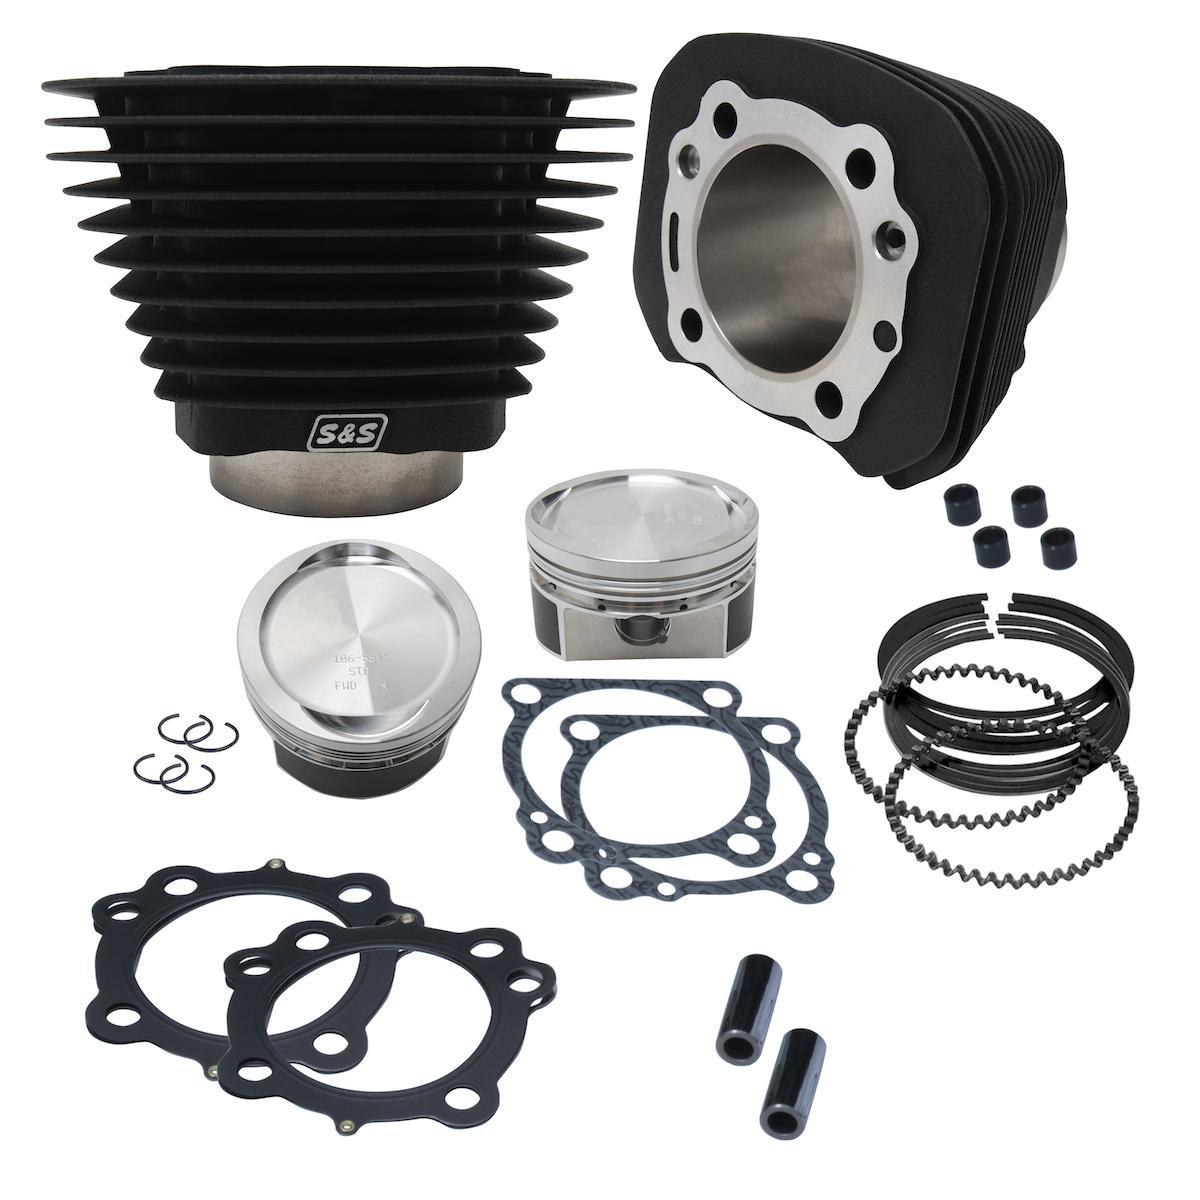 S&S CYCLE - Updated Big Bore Kits for HD Sportster Models